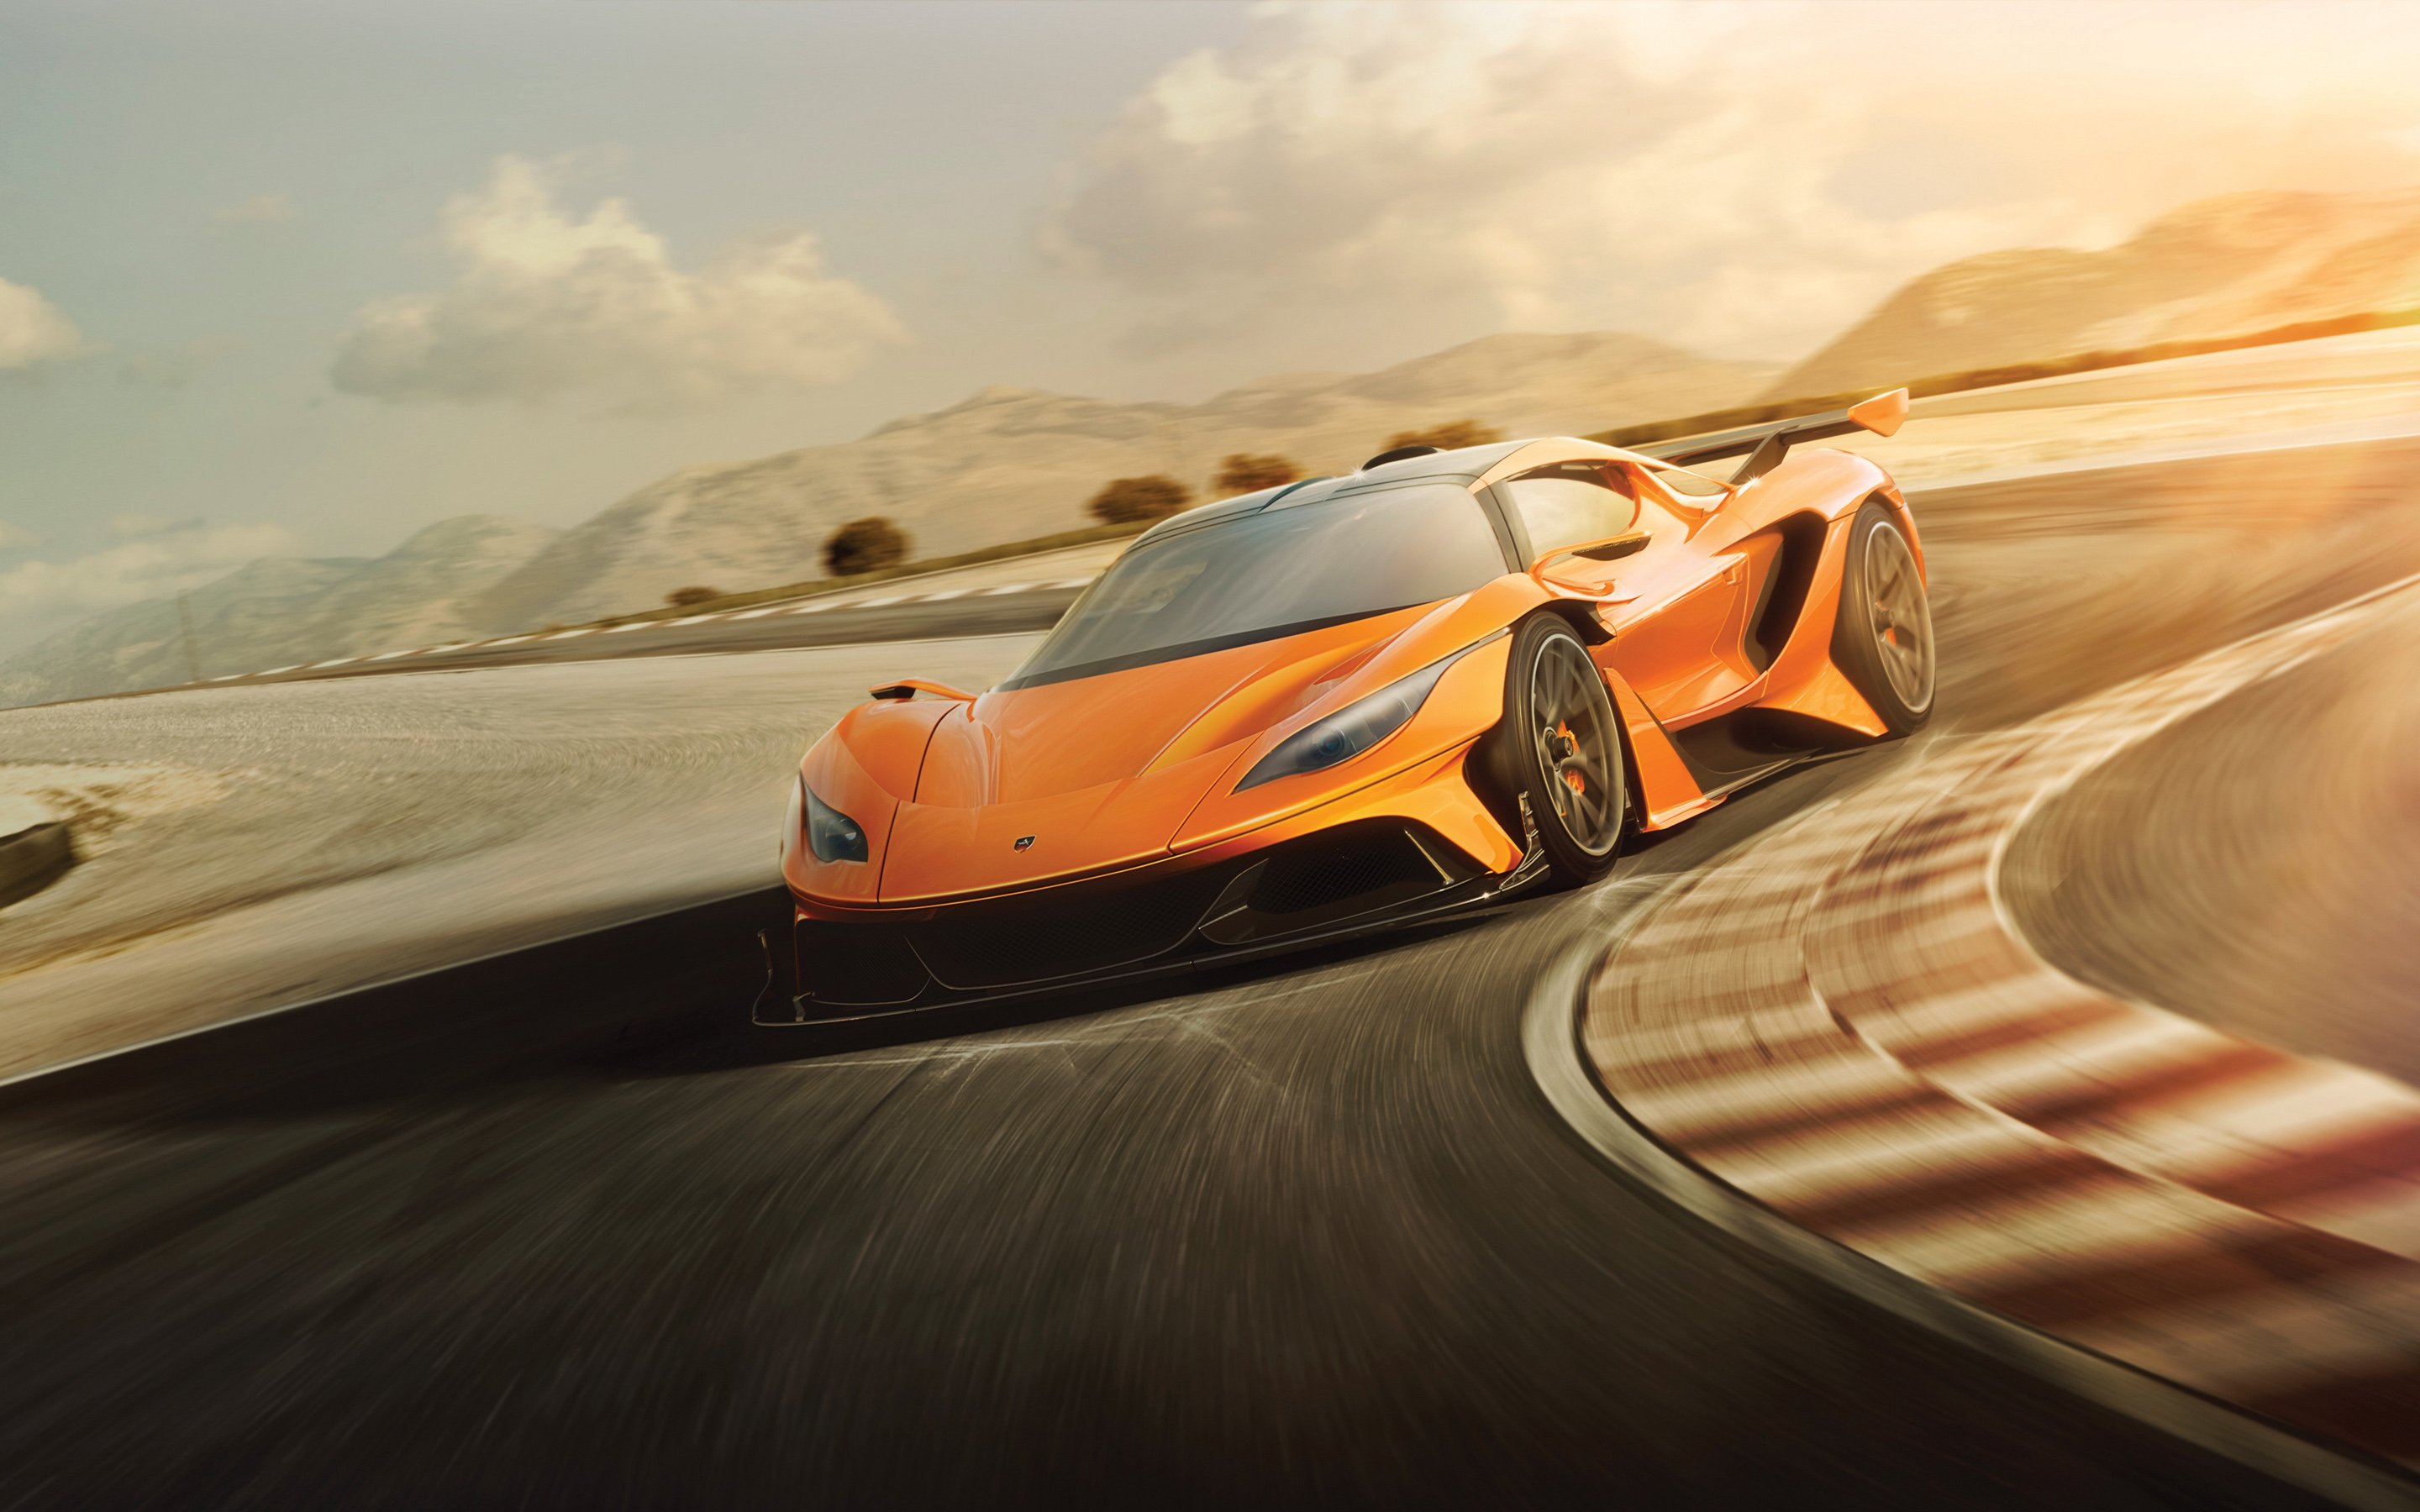 Apollo arrow prototype 4k wallpaper hd car wallpapers - Wallpaper hd 4k car ...